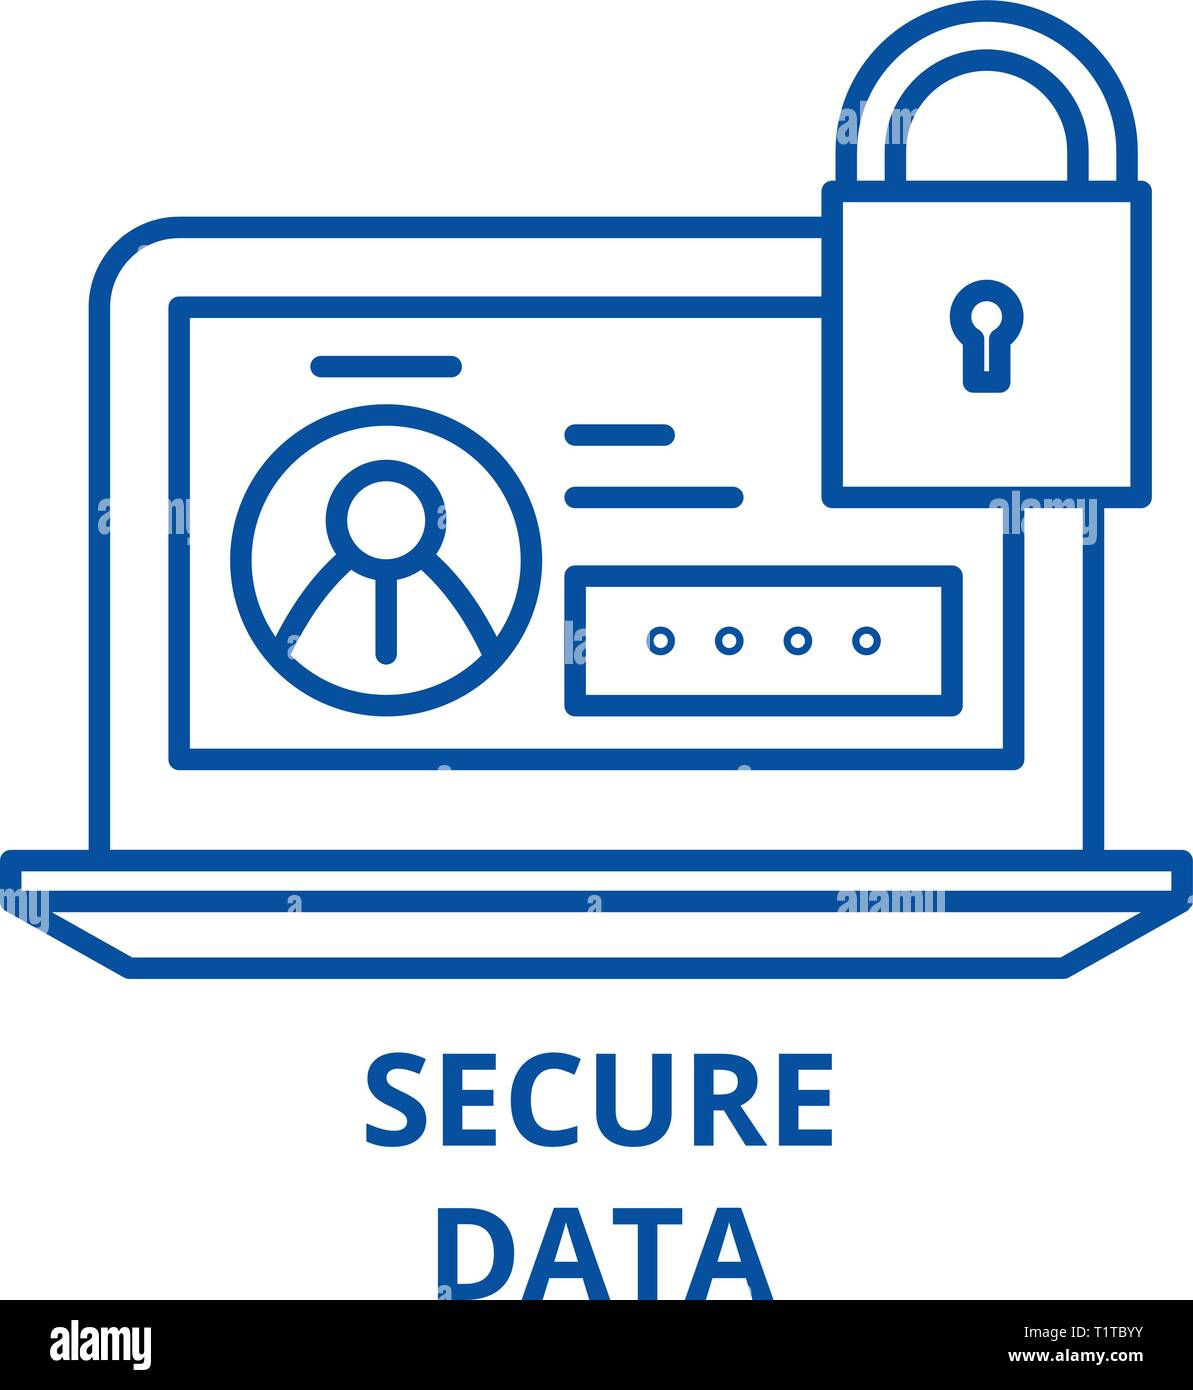 Secure data line icon concept. Secure data flat  vector symbol, sign, outline illustration. - Stock Vector